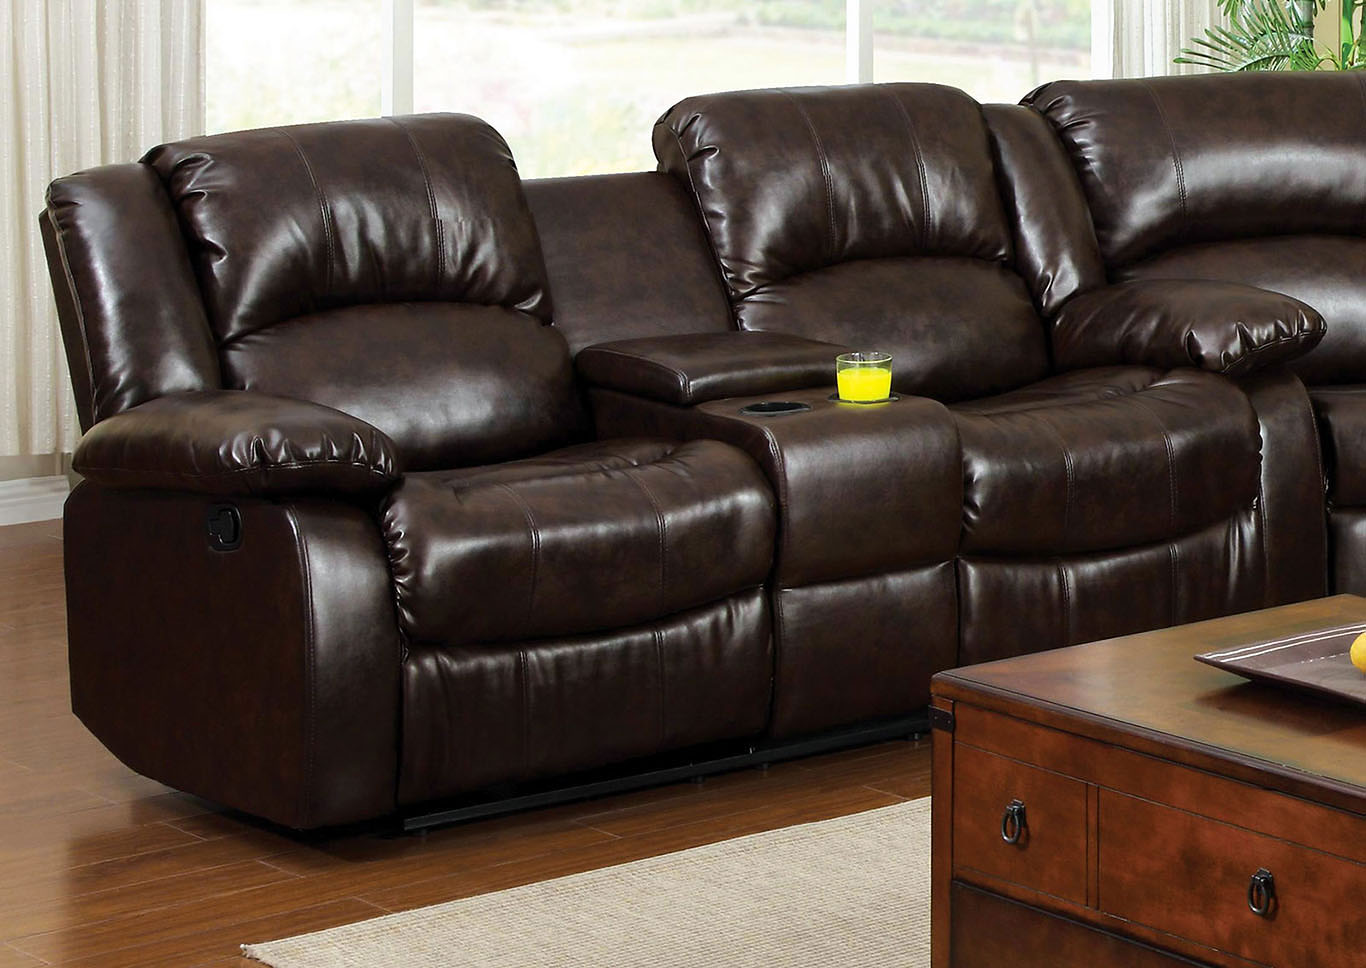 Enjoyable Alexis Furniture Winslow Dark Brown Bonded Leather Loveseat Pabps2019 Chair Design Images Pabps2019Com